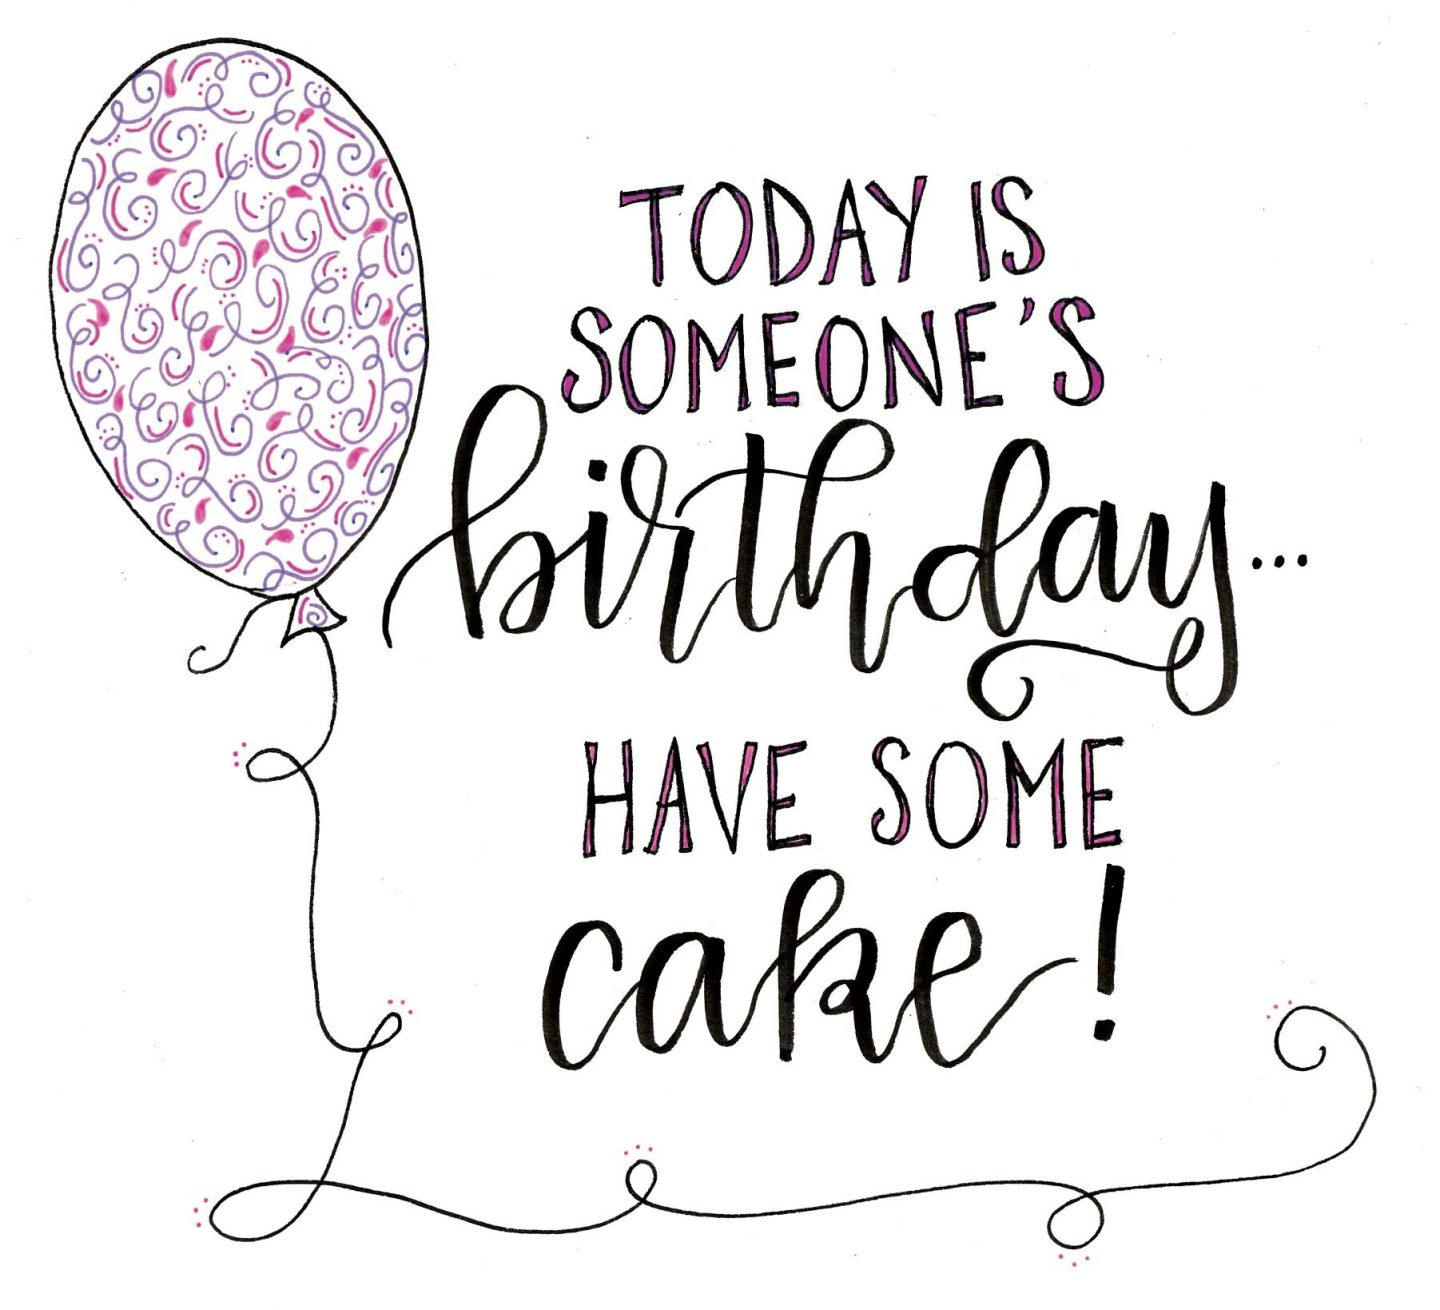 Funny handlettered quote about cake and birthdays by Amy Latta. #funnyquote #birthdayquote #cake #birthdaycake